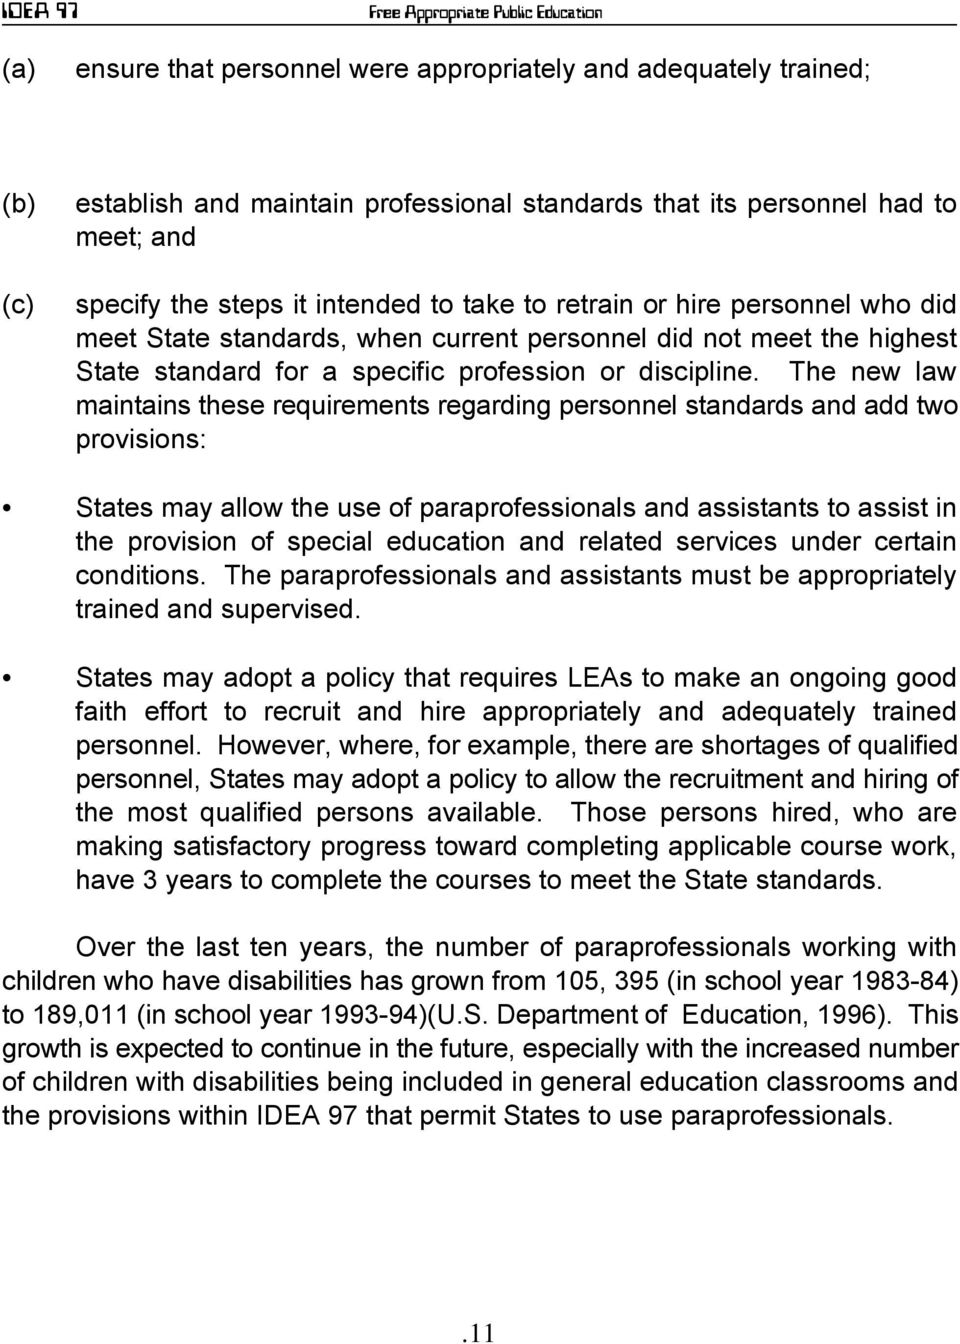 The new law maintains these requirements regarding personnel standards and add two provisions: States may allow the use of paraprofessionals and assistants to assist in the provision of special